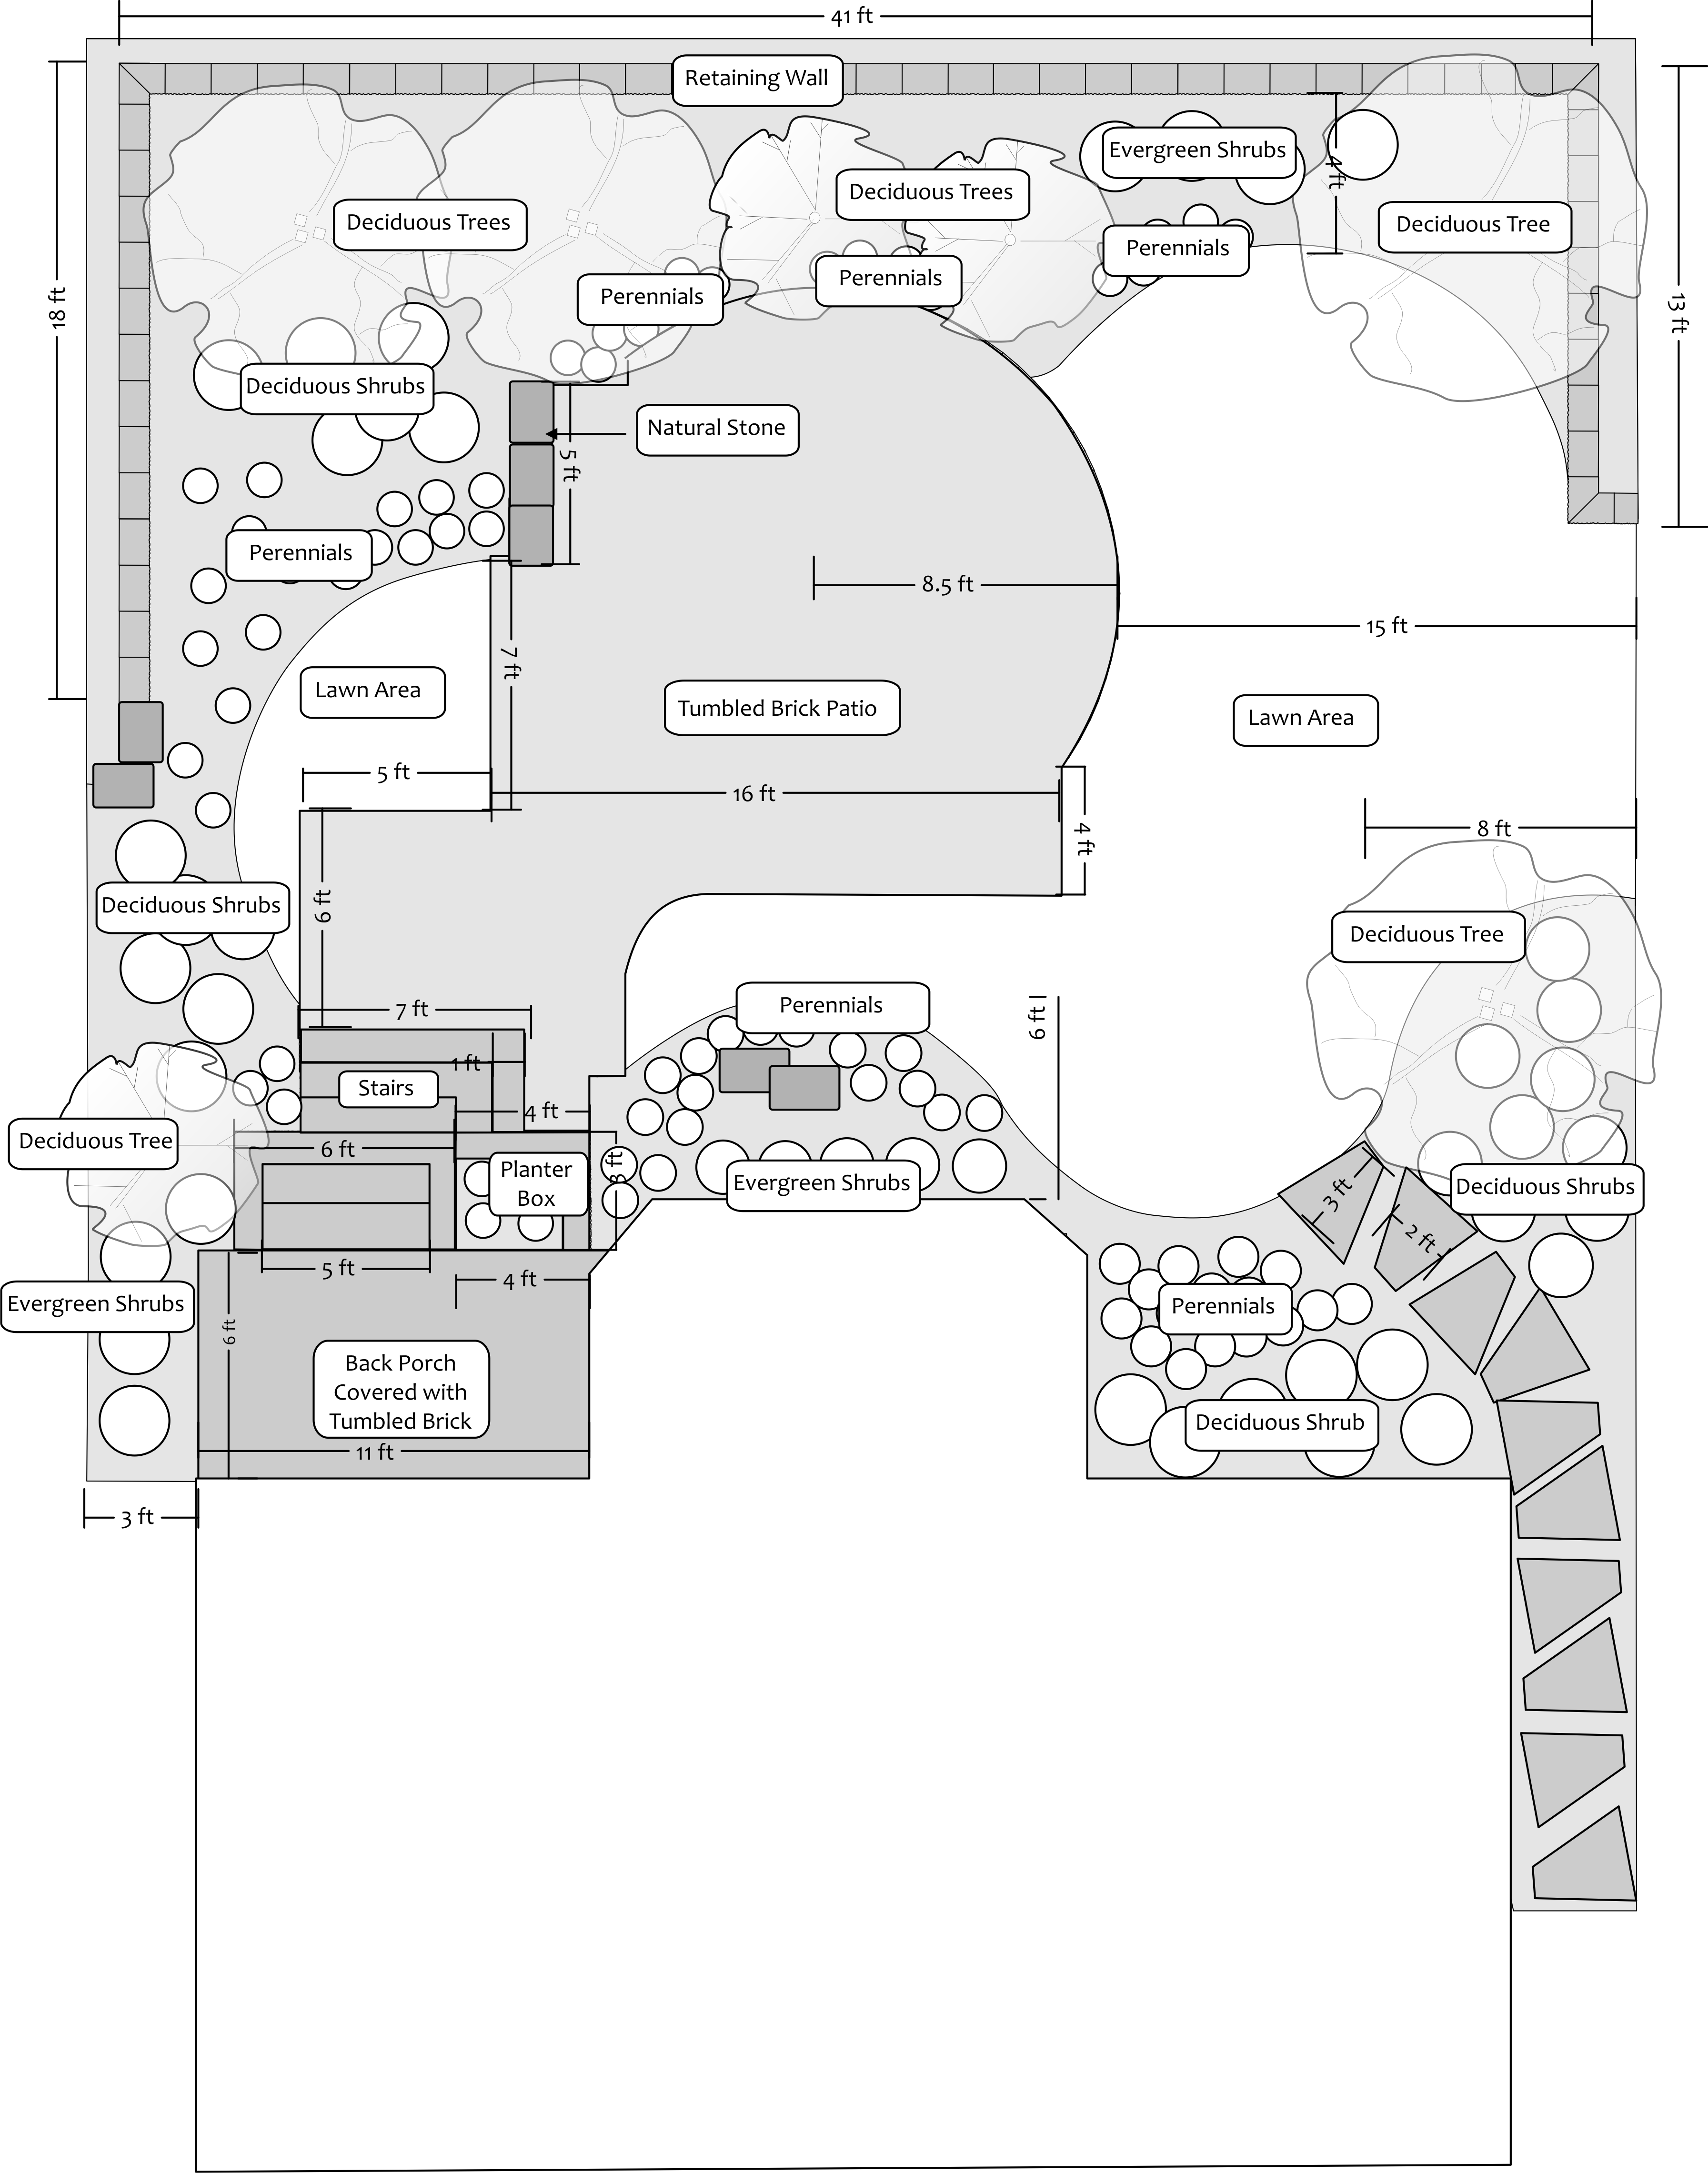 backyard landscape planning made easy apparently have to join